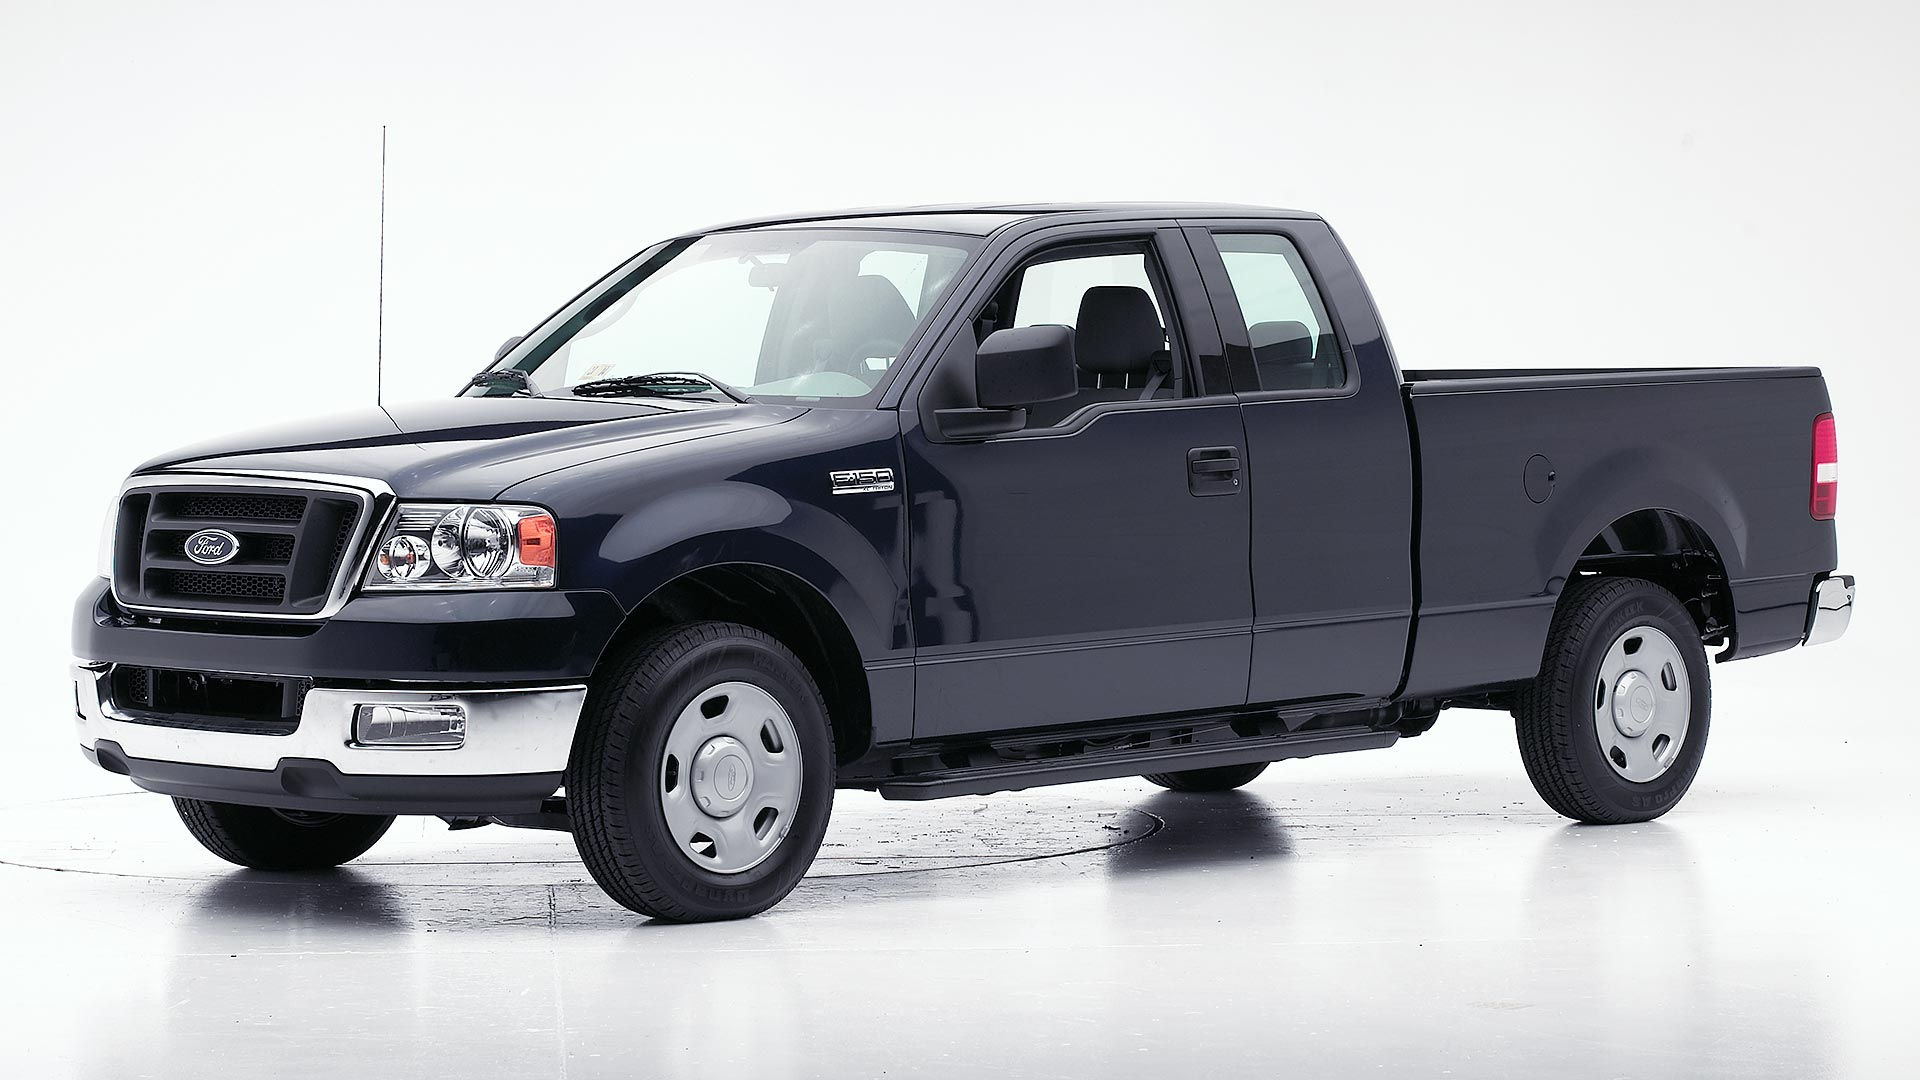 2006 Ford F-150 Crew cab pickup